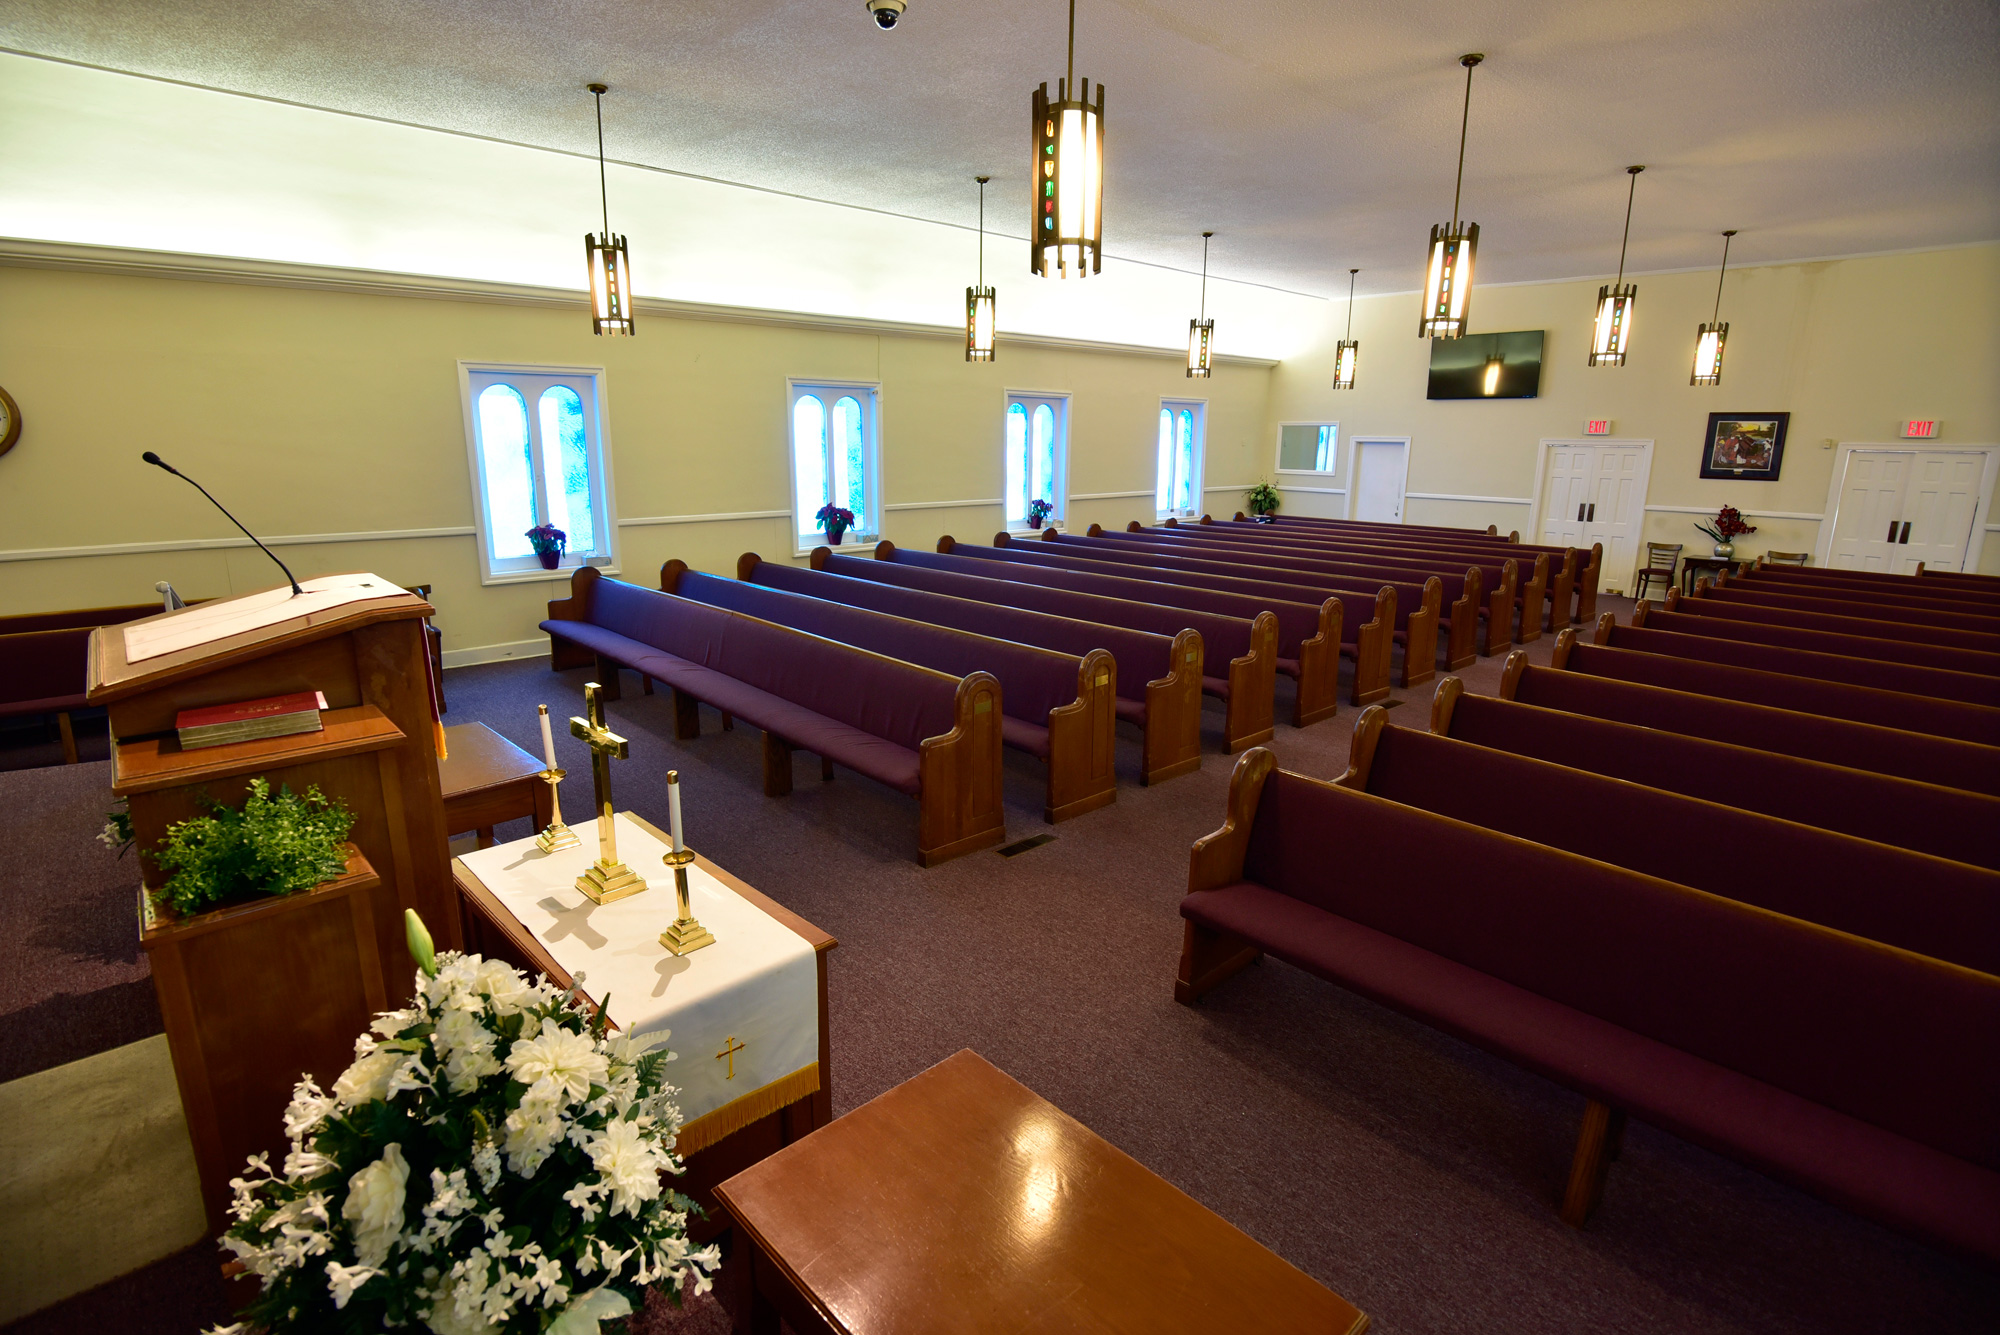 Shiloh Missionary Baptist Church in Albany, Georgia